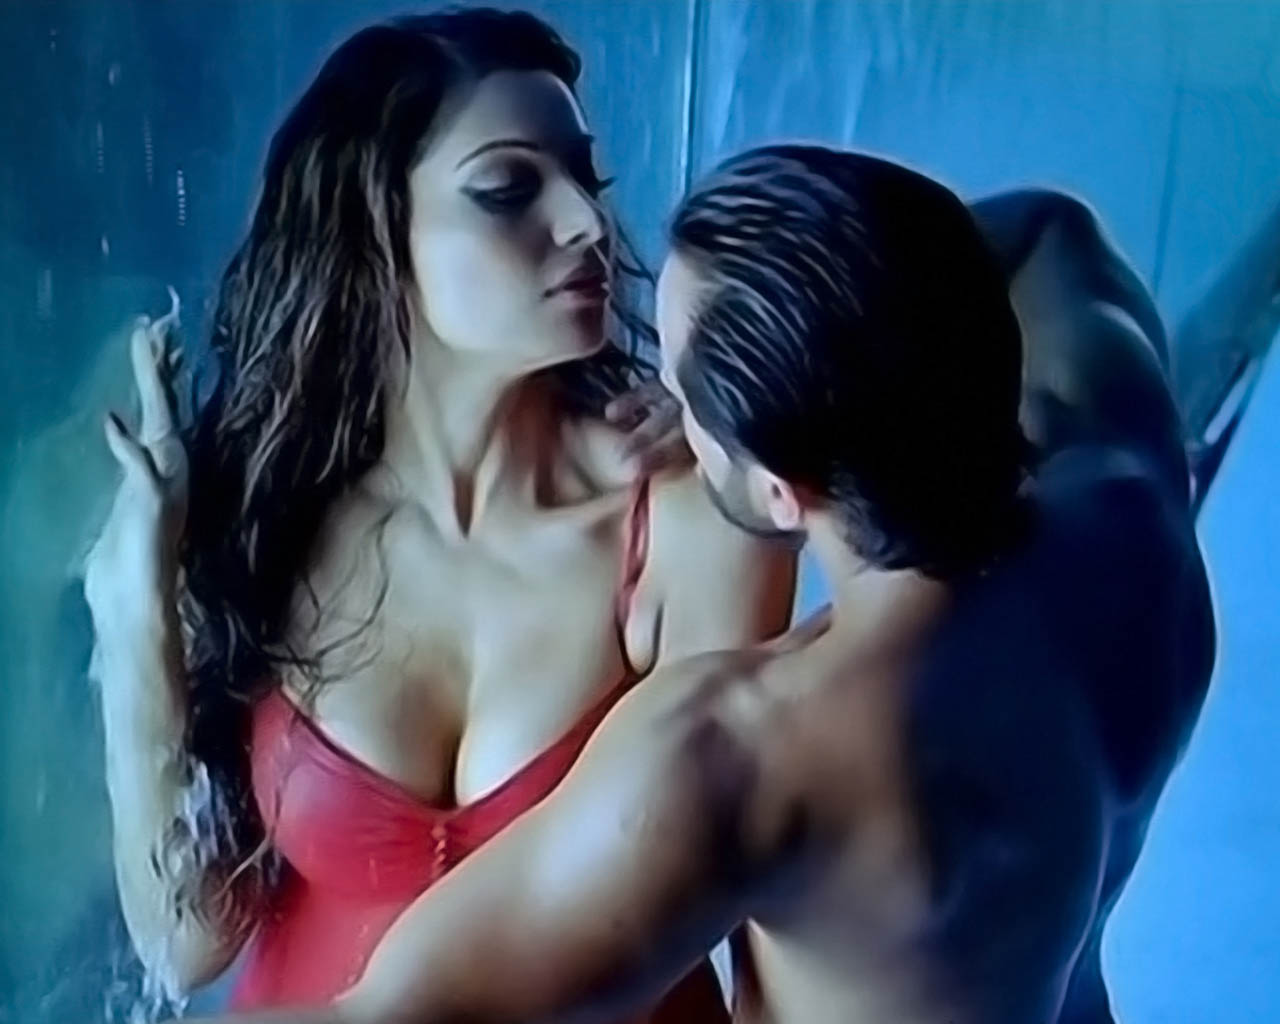 http://2.bp.blogspot.com/_eX5xKWfsiuo/TH4EgtbTZ9I/AAAAAAAACcM/Ywl43JwRYxo/s1600/Bipasha+Basu-a-Bed-Pics-Wallpaper-Picture-Pao-Image-Scenes-Saif-Ali-Khan-Race-Latest-Actress-2010.jpg